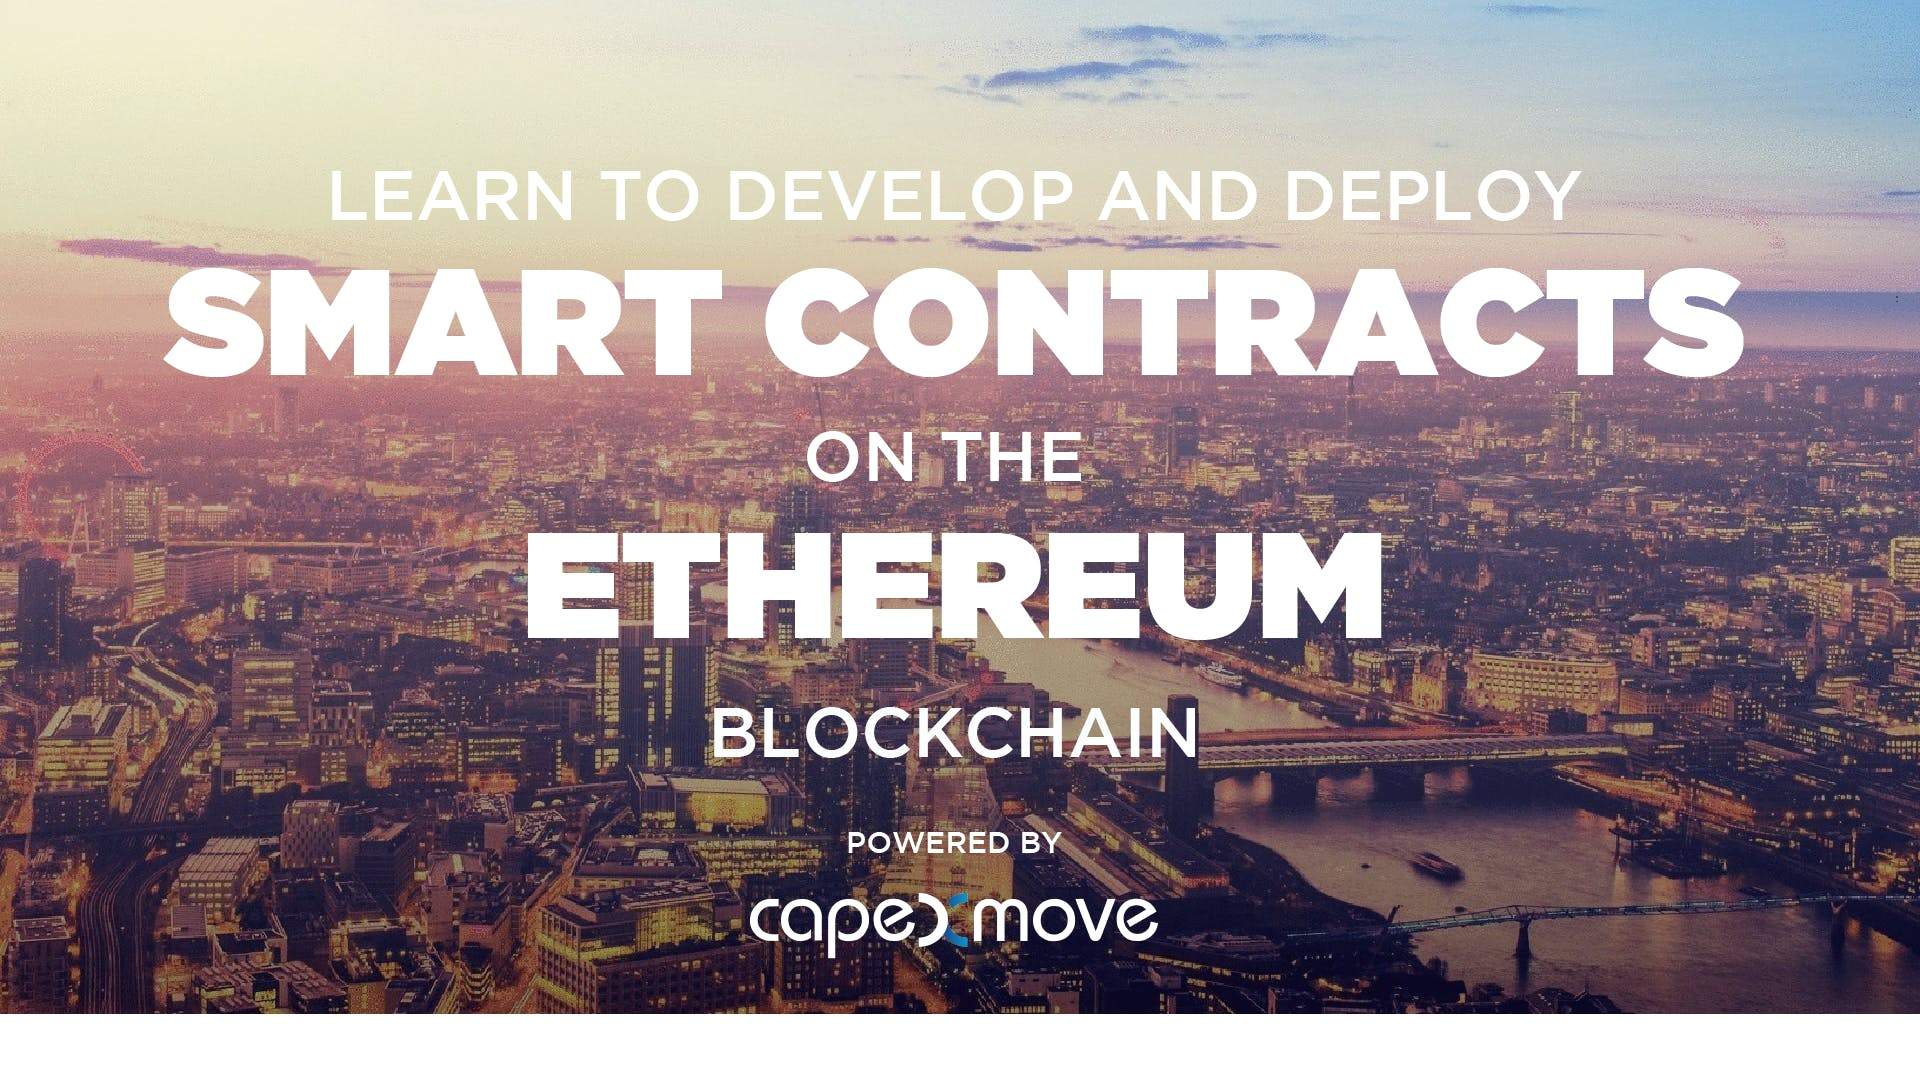 Online Workshop to Develop Smart Contracts on